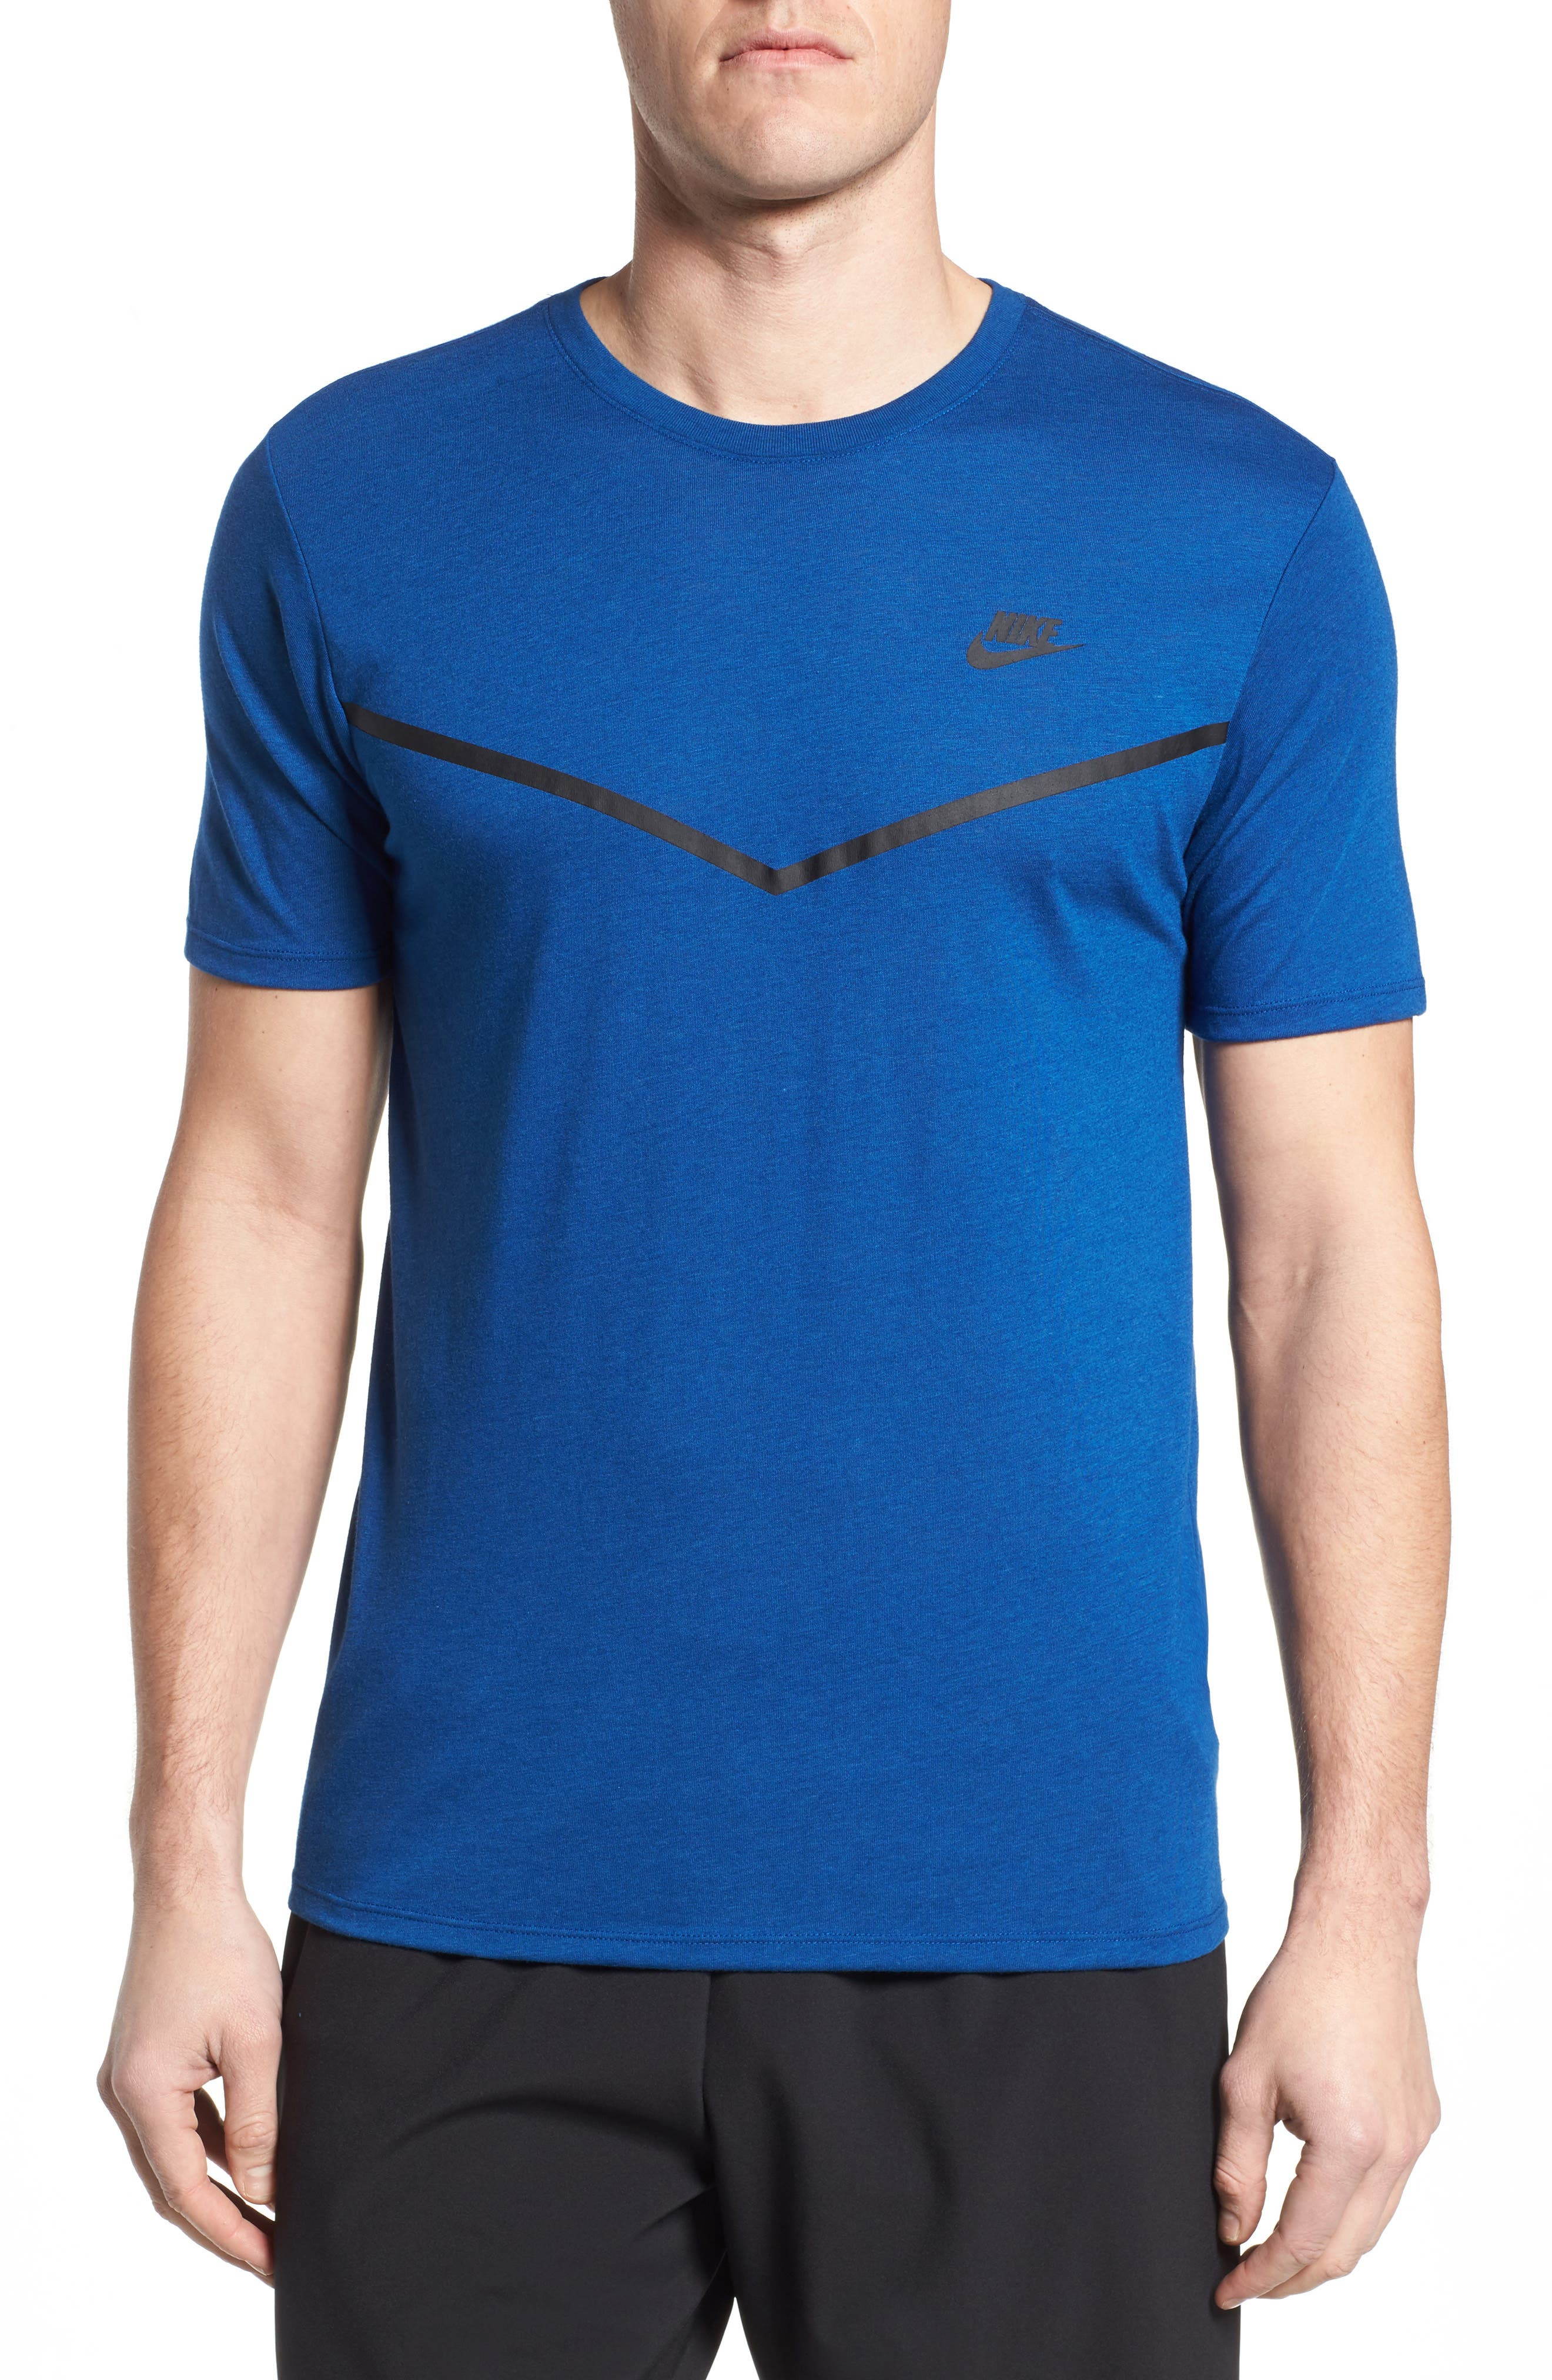 Alternate Image 1 Selected - Nike NSW TB Tech T-Shirt